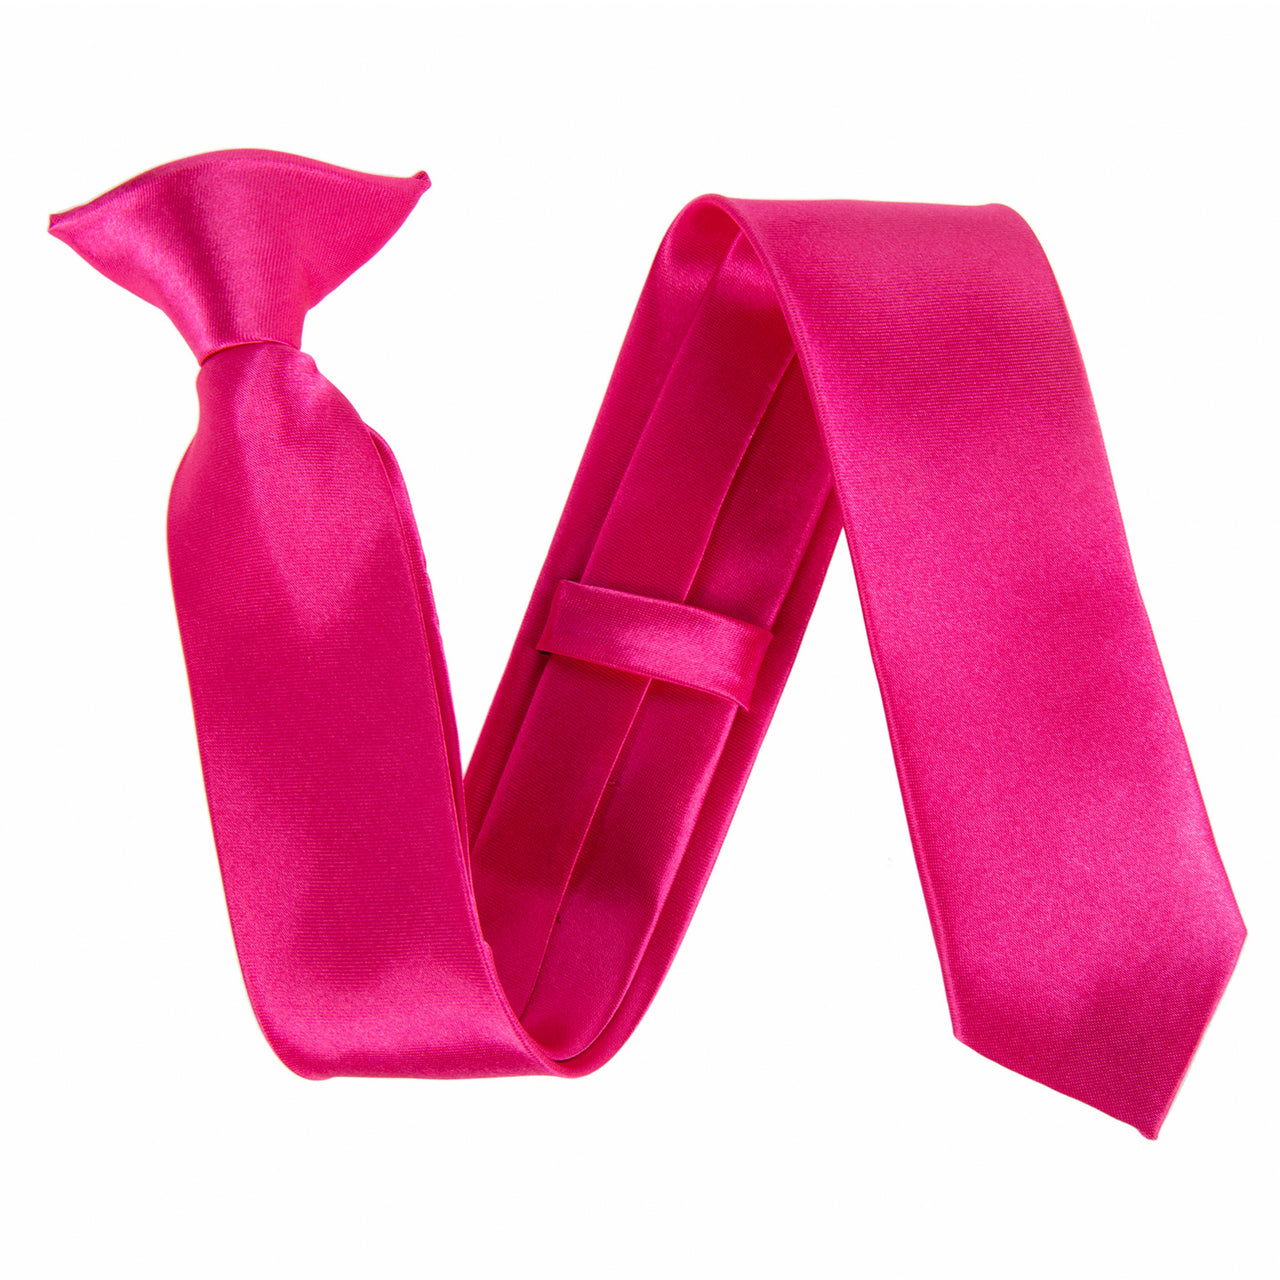 "Slim / Skinny 2"" Clip On Safety Tie - Hot Pink"